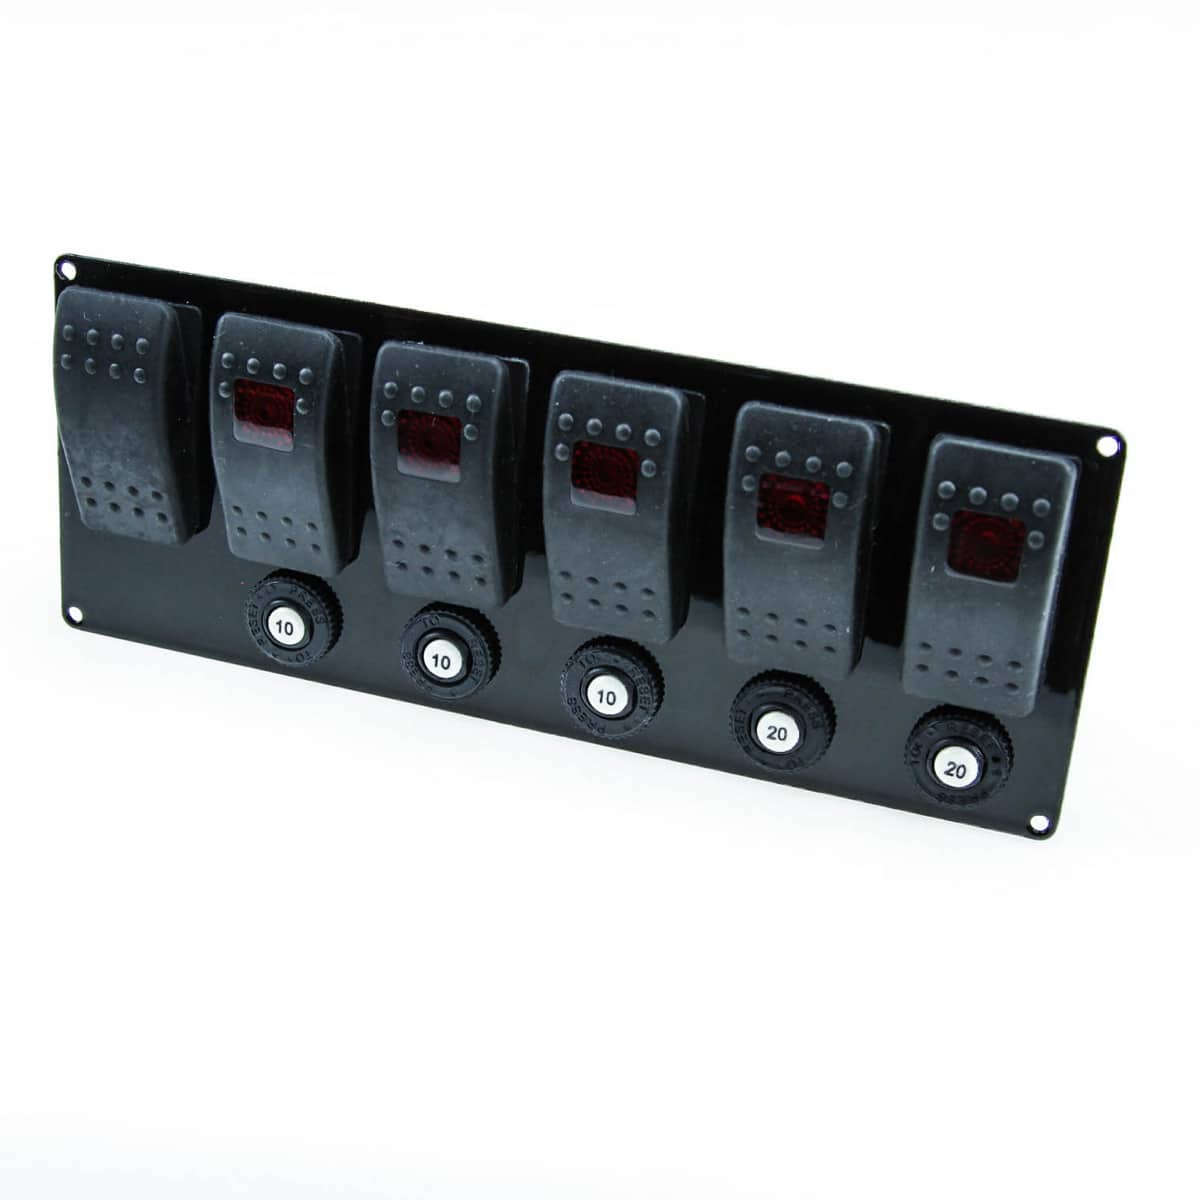 hight resolution of 6 circuit switch panel 460 switchgear wiring med voltage switchgear